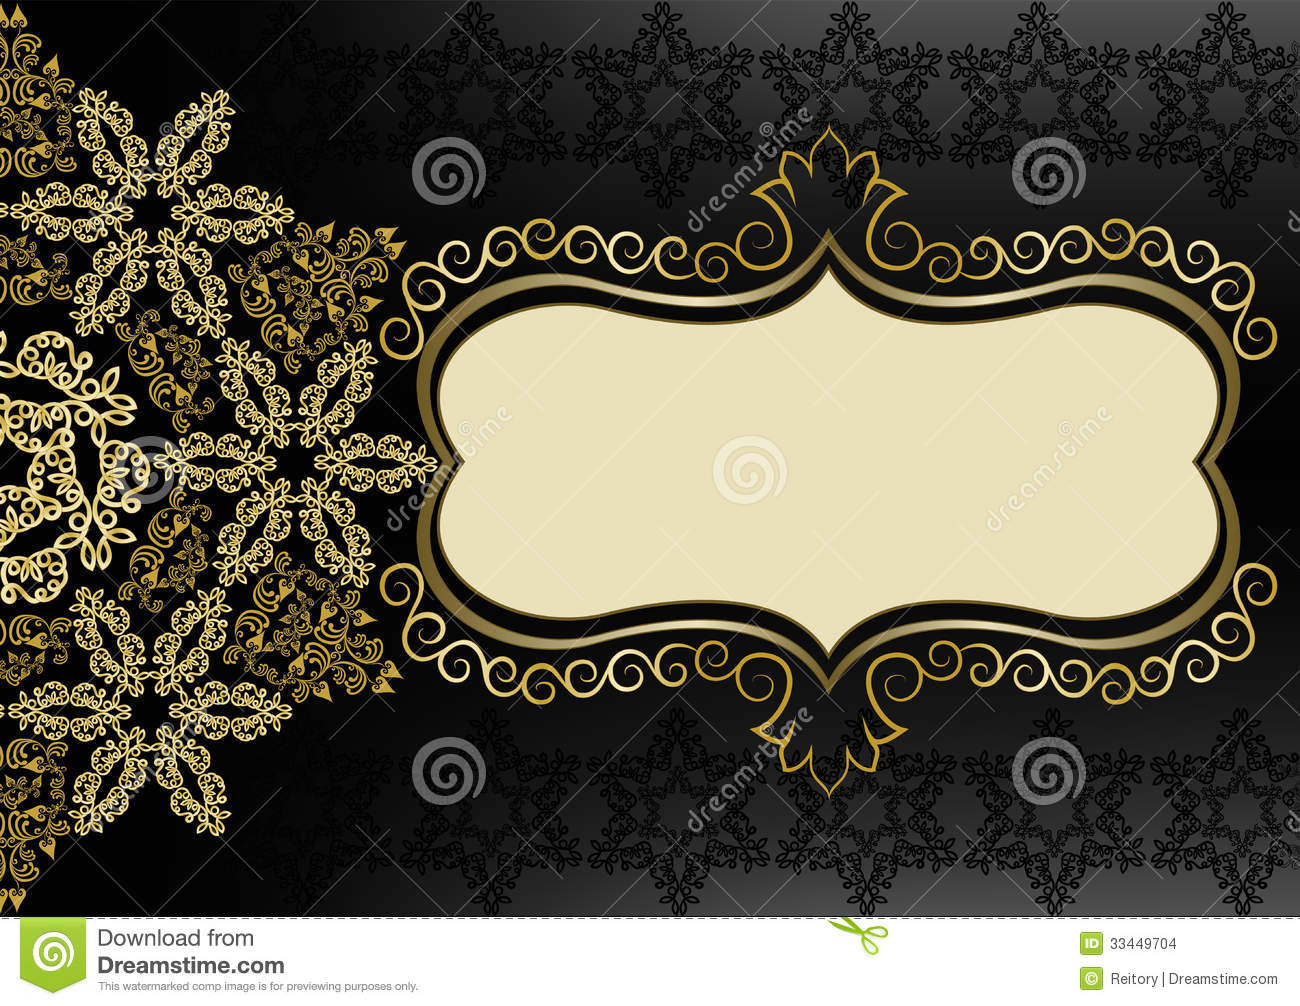 Vintage Gold Frame On A Black Background Stock Photo - Image of decorative, label: 33449704